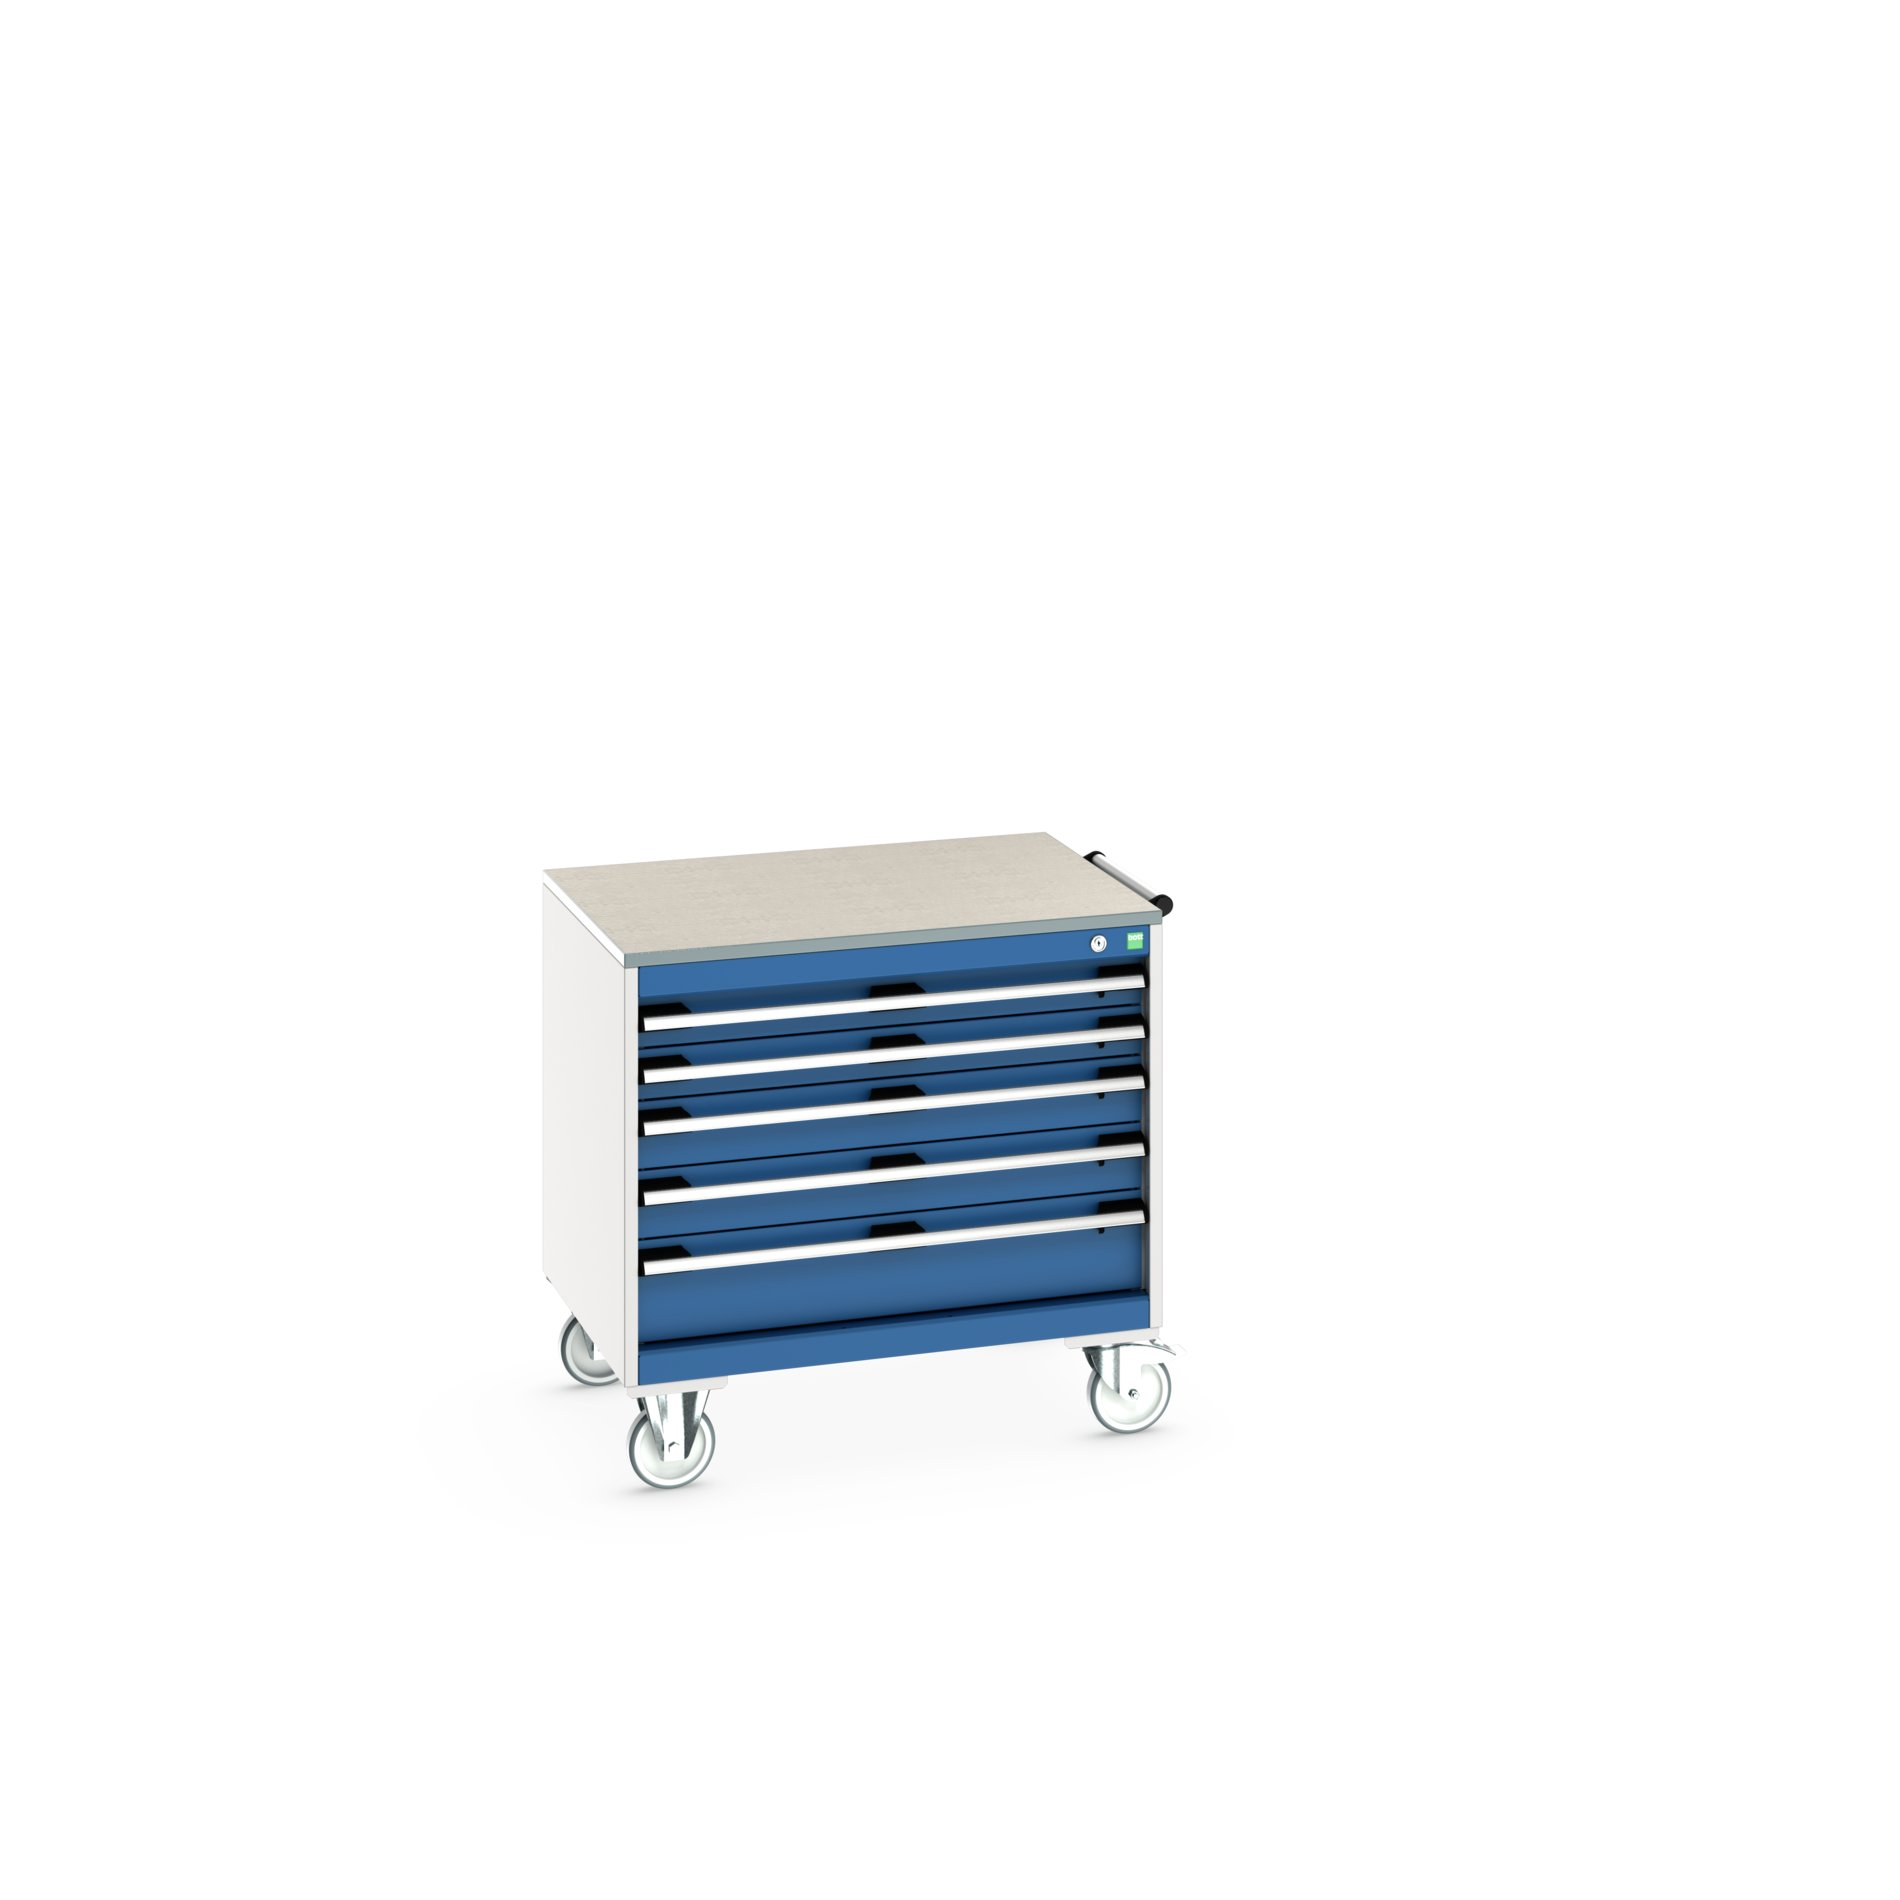 Bott Cubio Mobile Drawer Cabinet With 5 Drawers & Lino Worktop